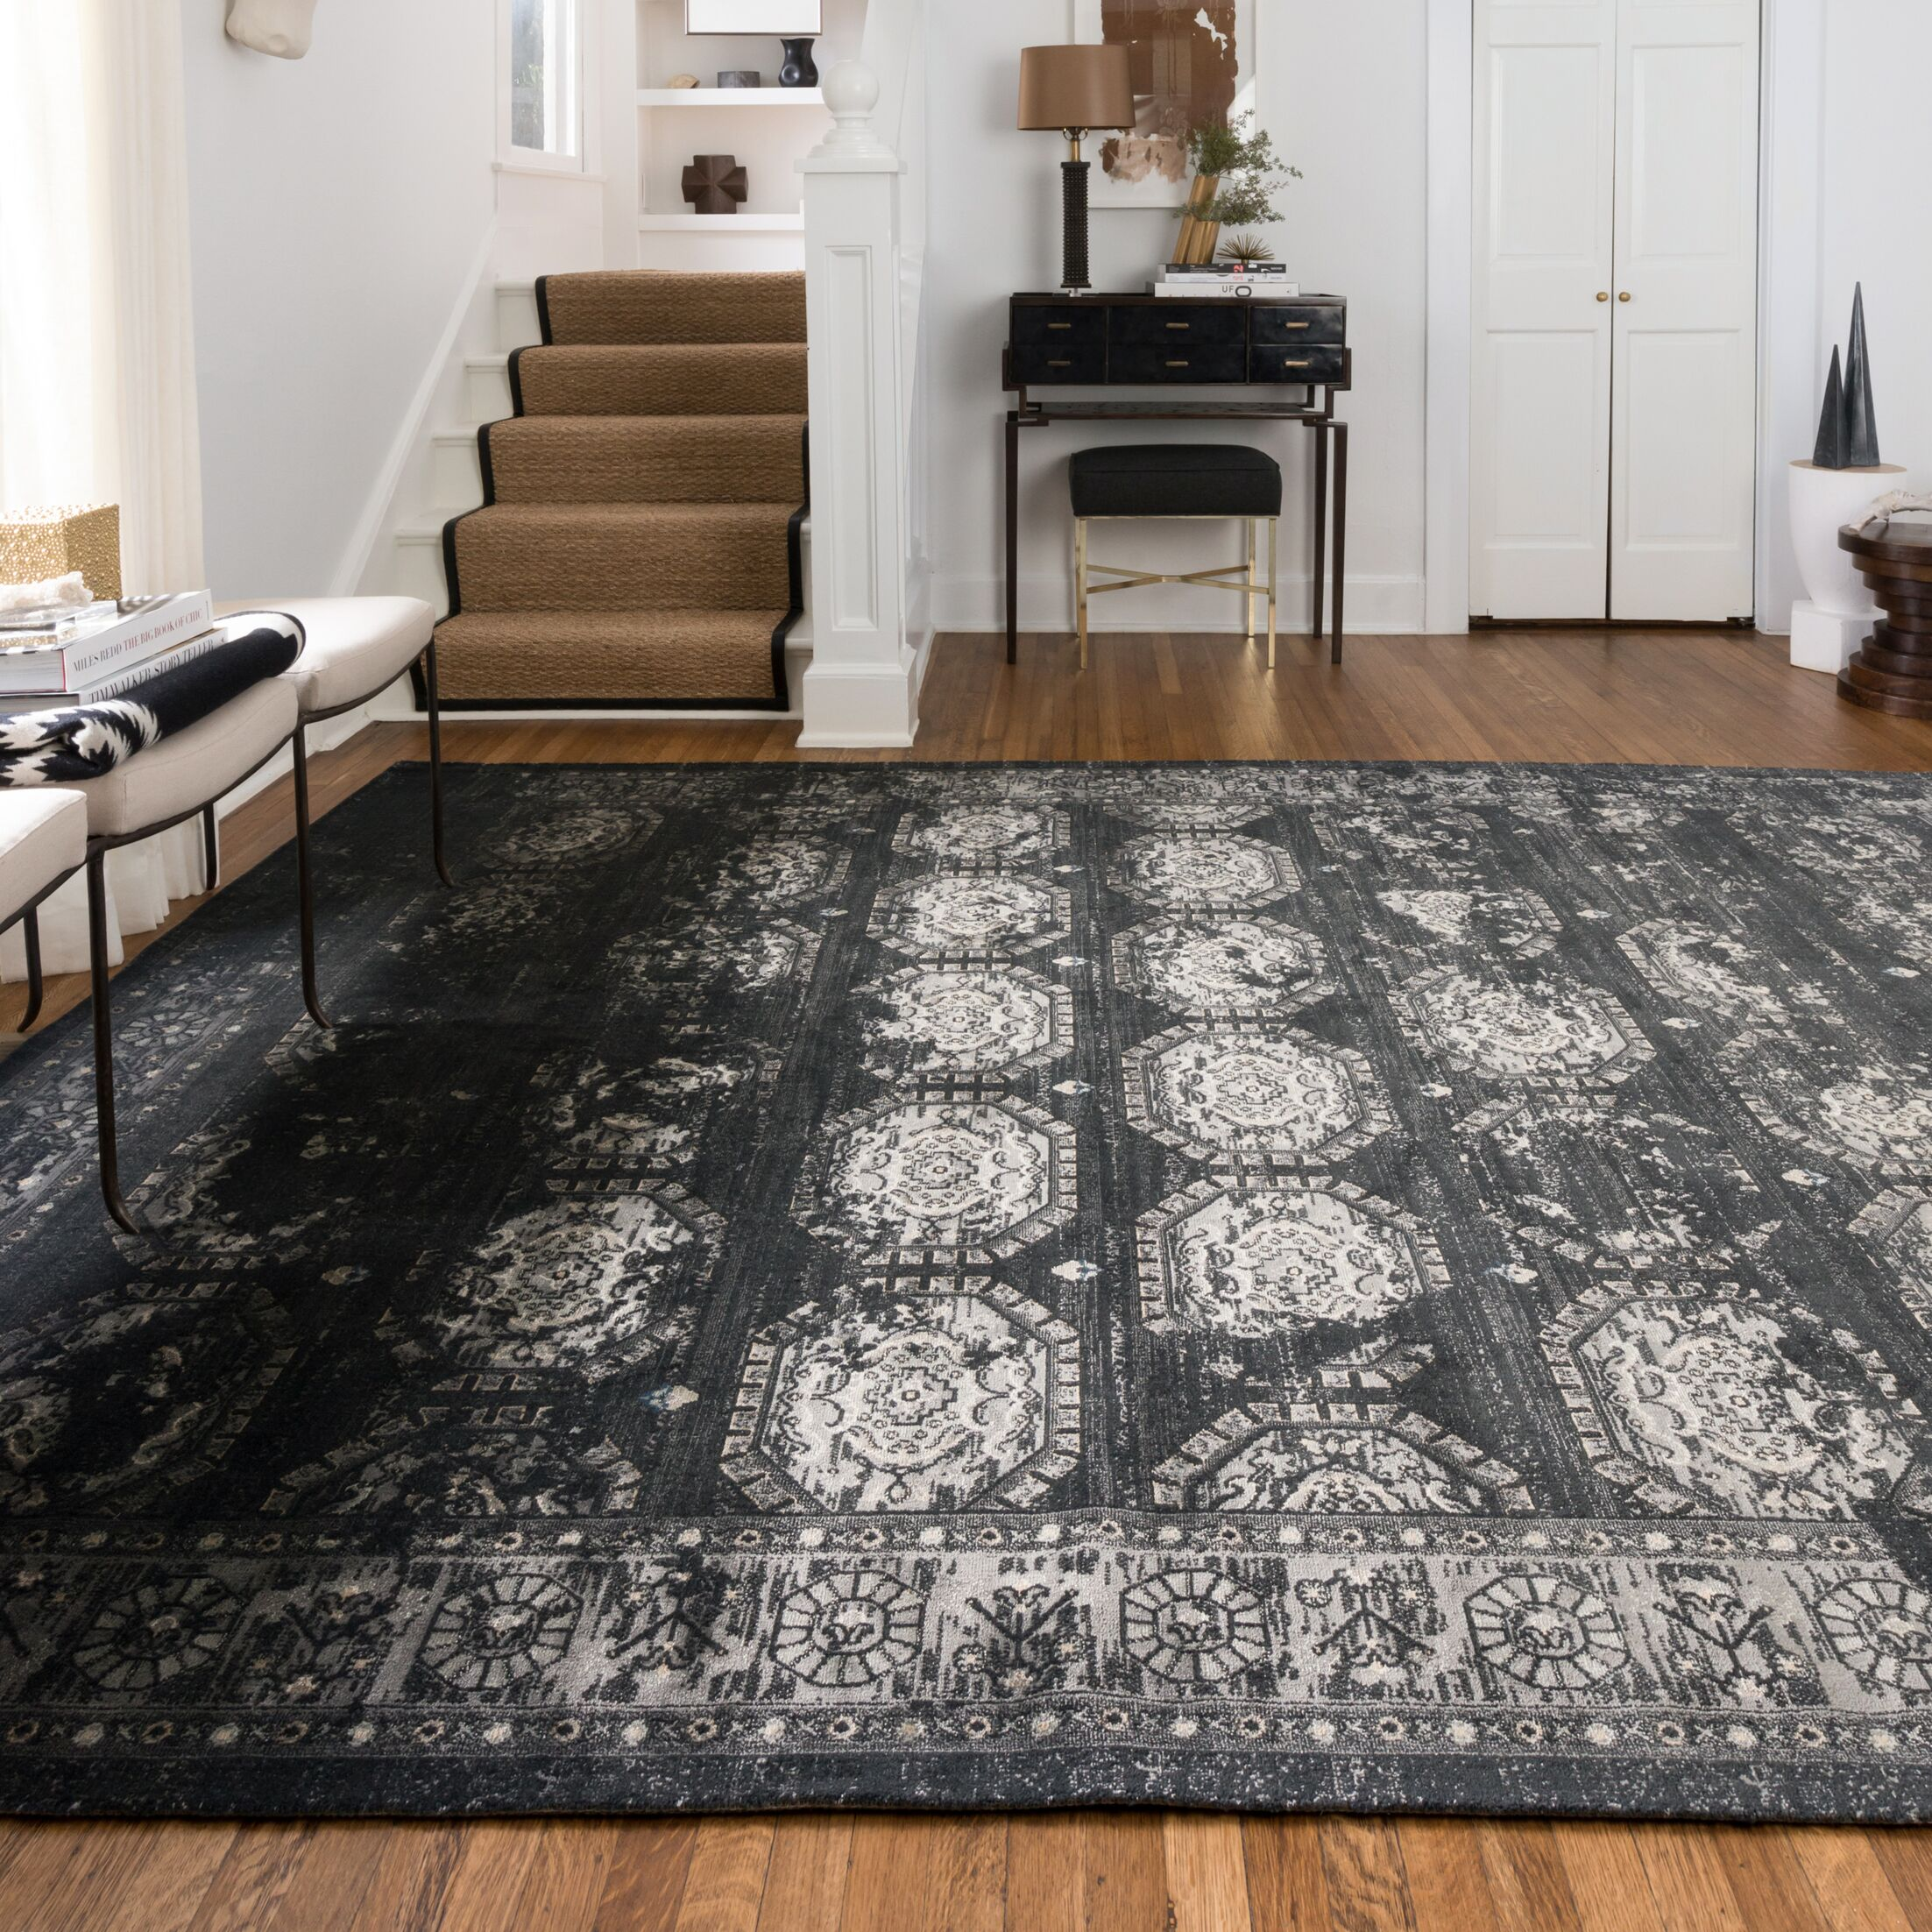 Durdham Park Black/Charcoal Area Rug Rug Size: Rectangle 5' x 7'6